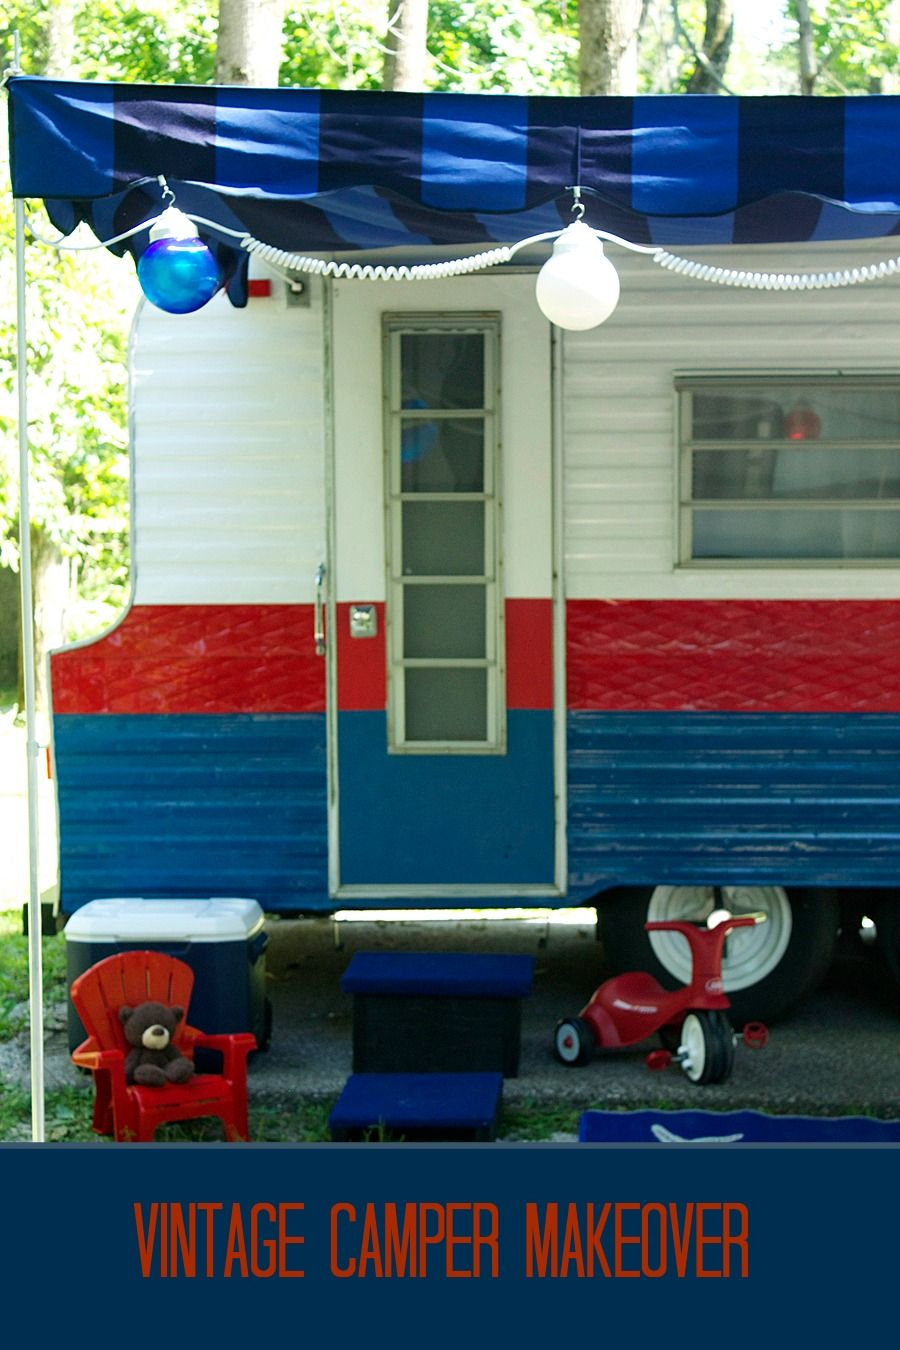 vintage camper, vintage camper makeover, camper, camping, laurie jones home, diy camper, red and white camper, decorating a camper, summer camping, glamping